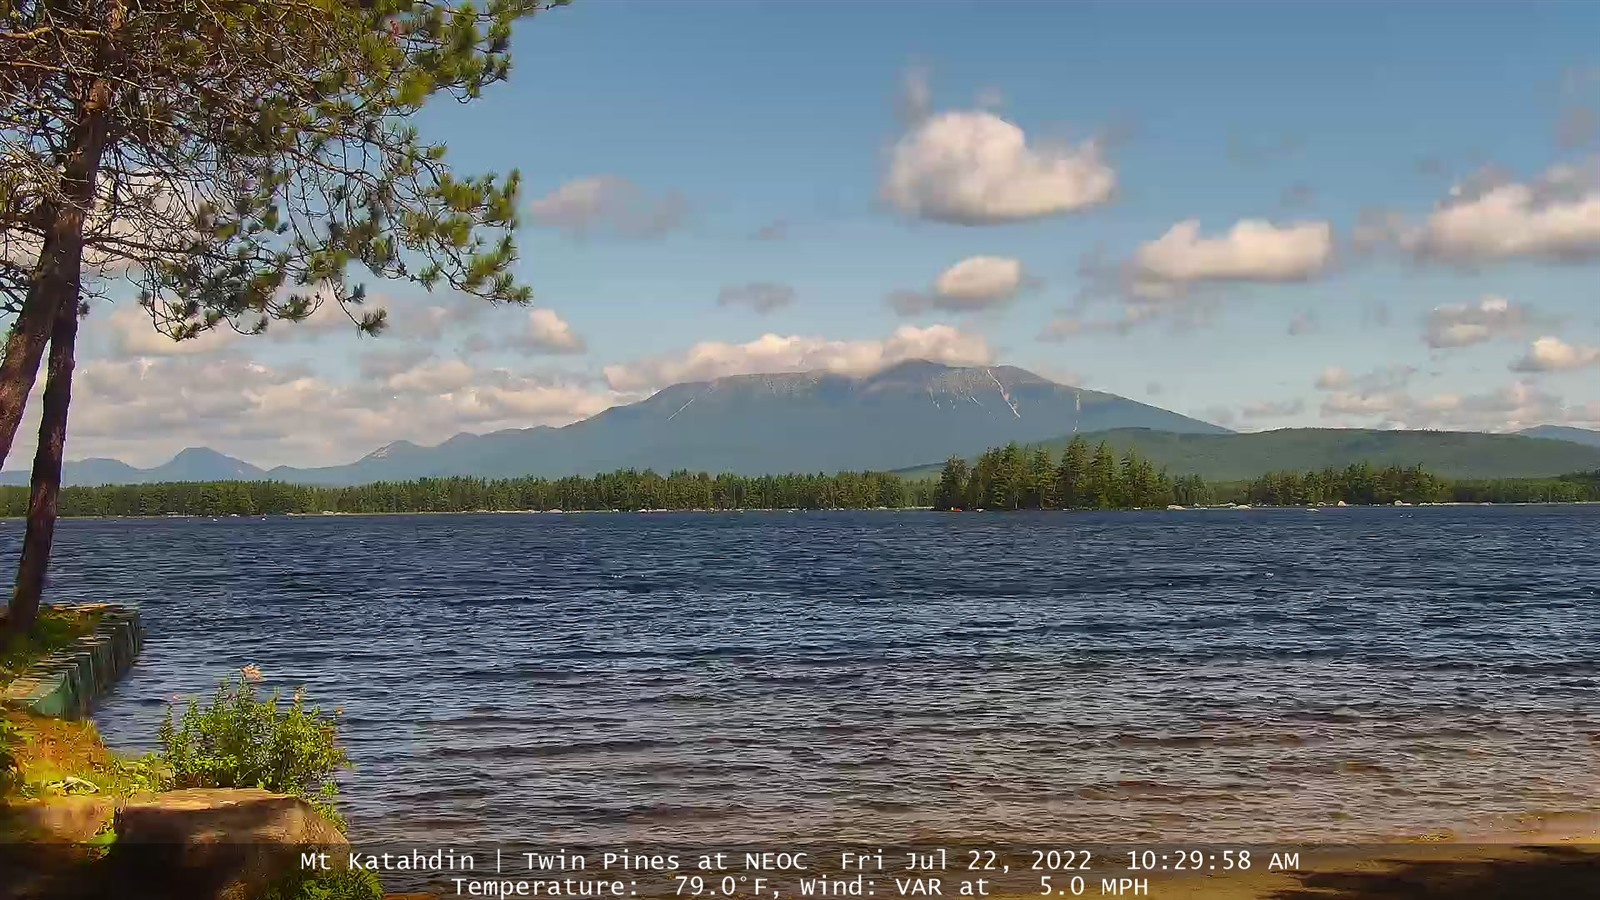 Webcam Millinocket Mt. Katahdin from Twin Pine Camps